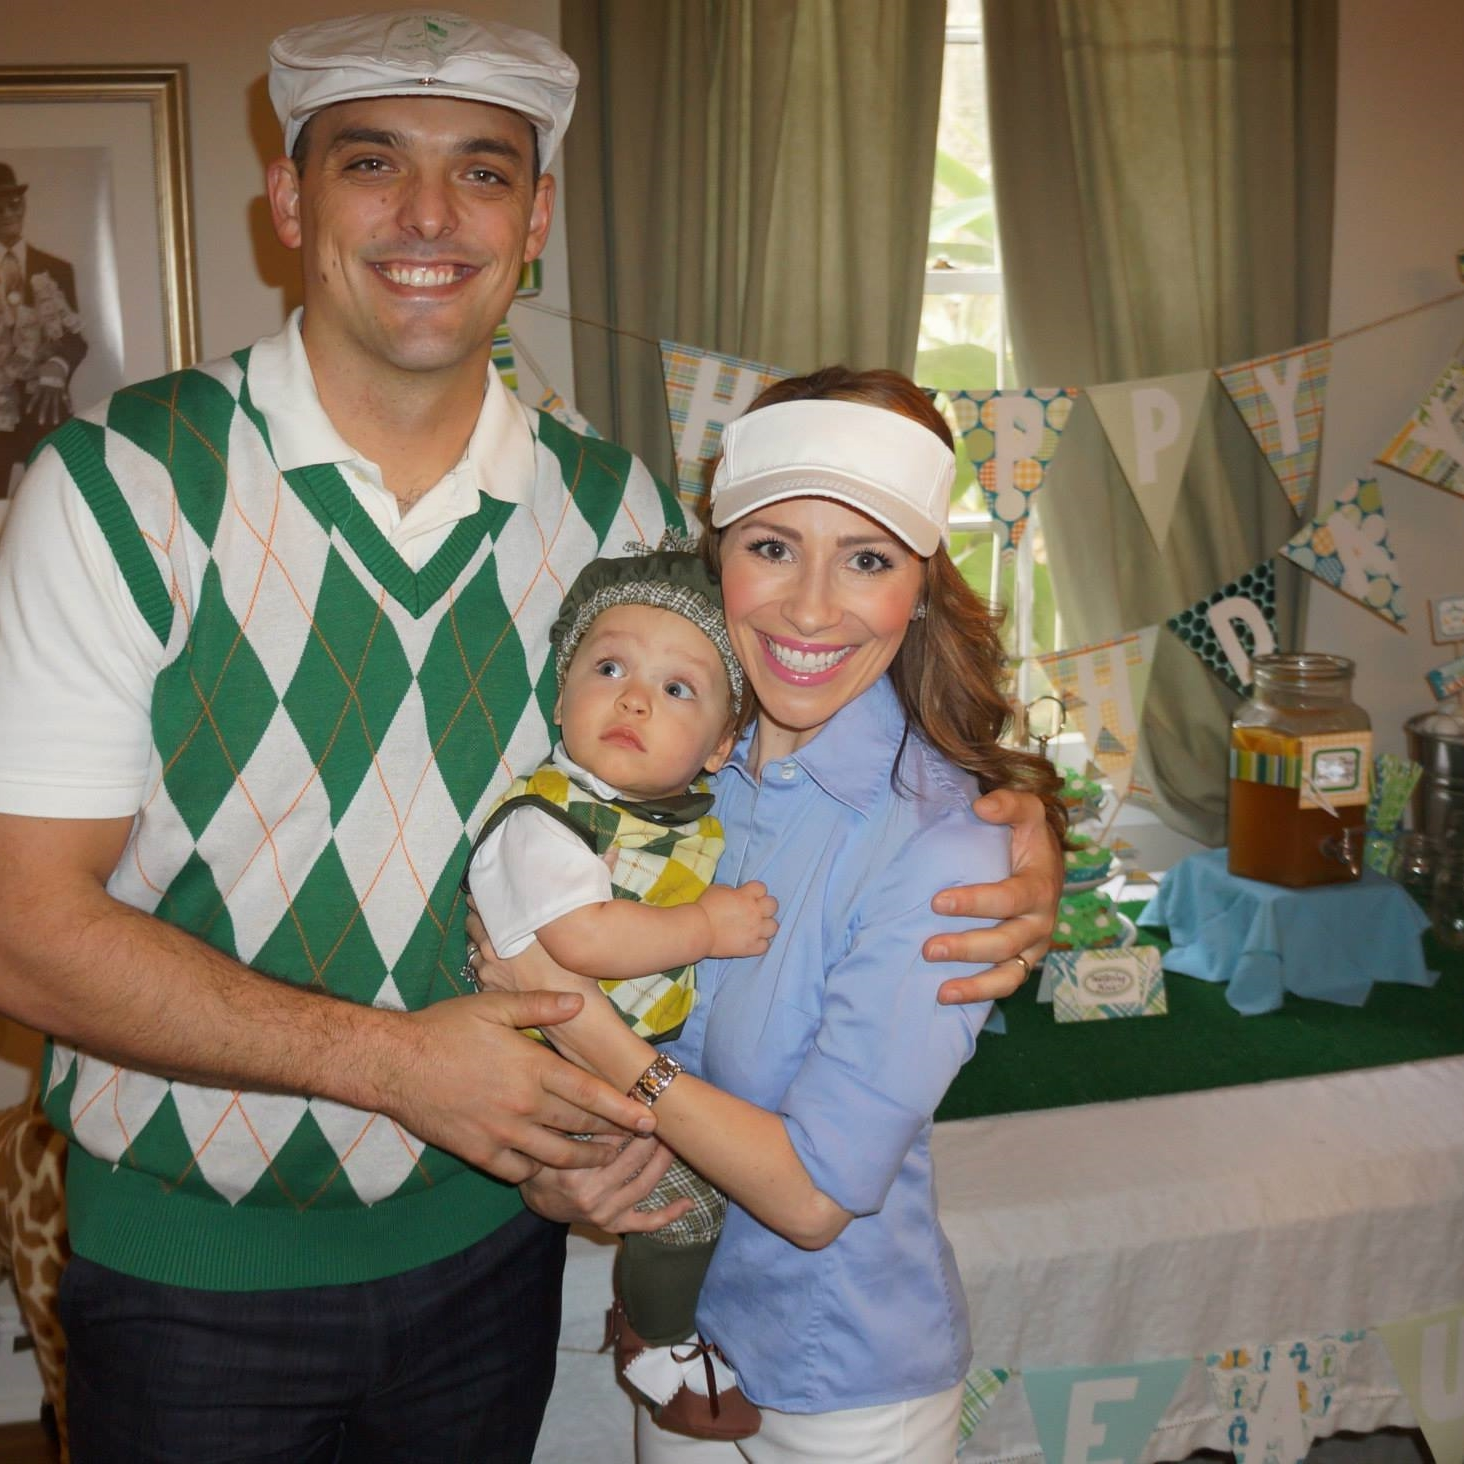 Golf themed family costume